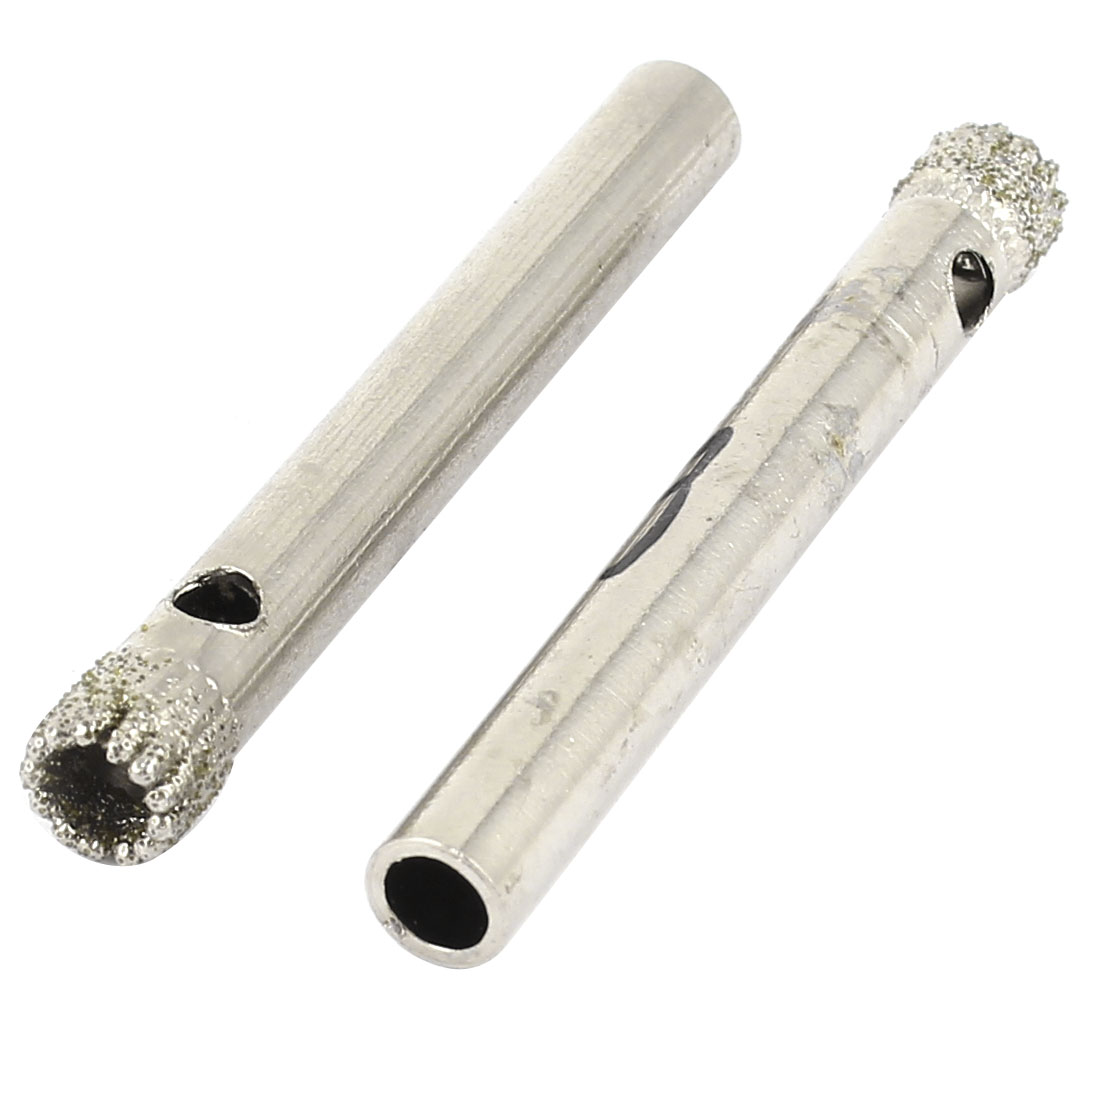 2 Pcs Diamond Coated Hole Saw Ceramic Glass Marble Tile Cutter 6mm Dia